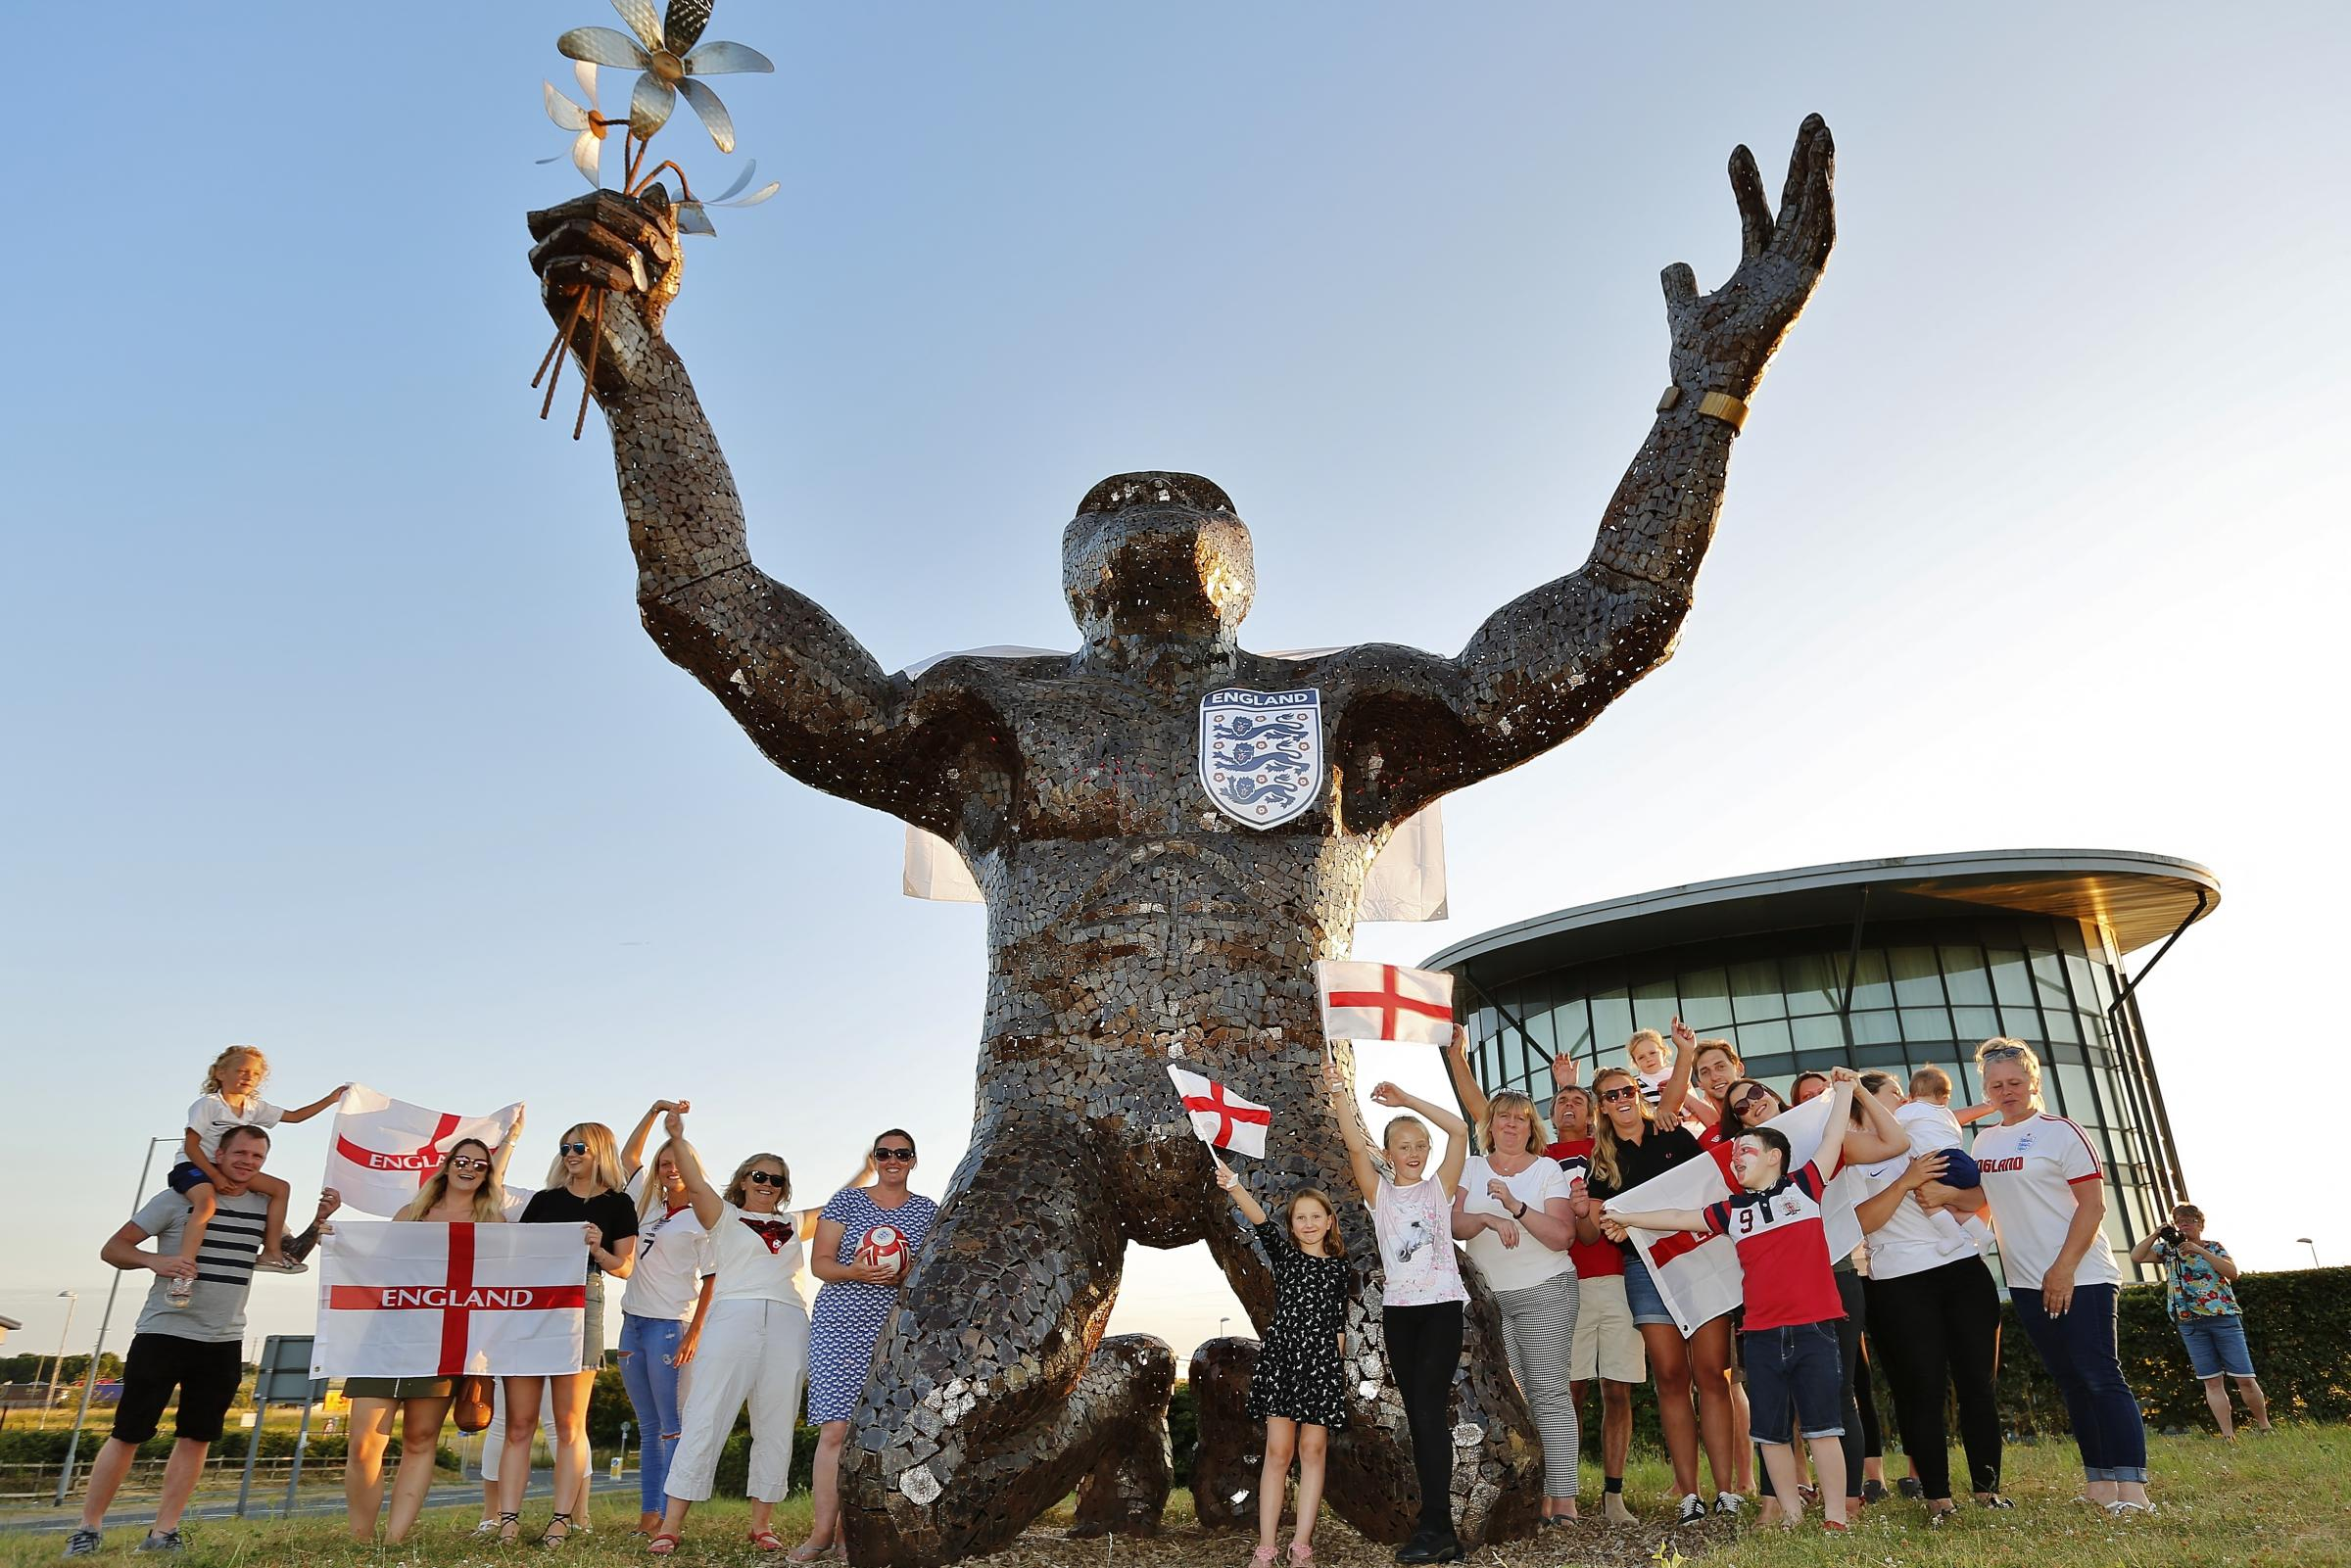 Come on England! The Amesbury Ancestor supports his team in the World Cup semi-final. Picture by Donald Capewell